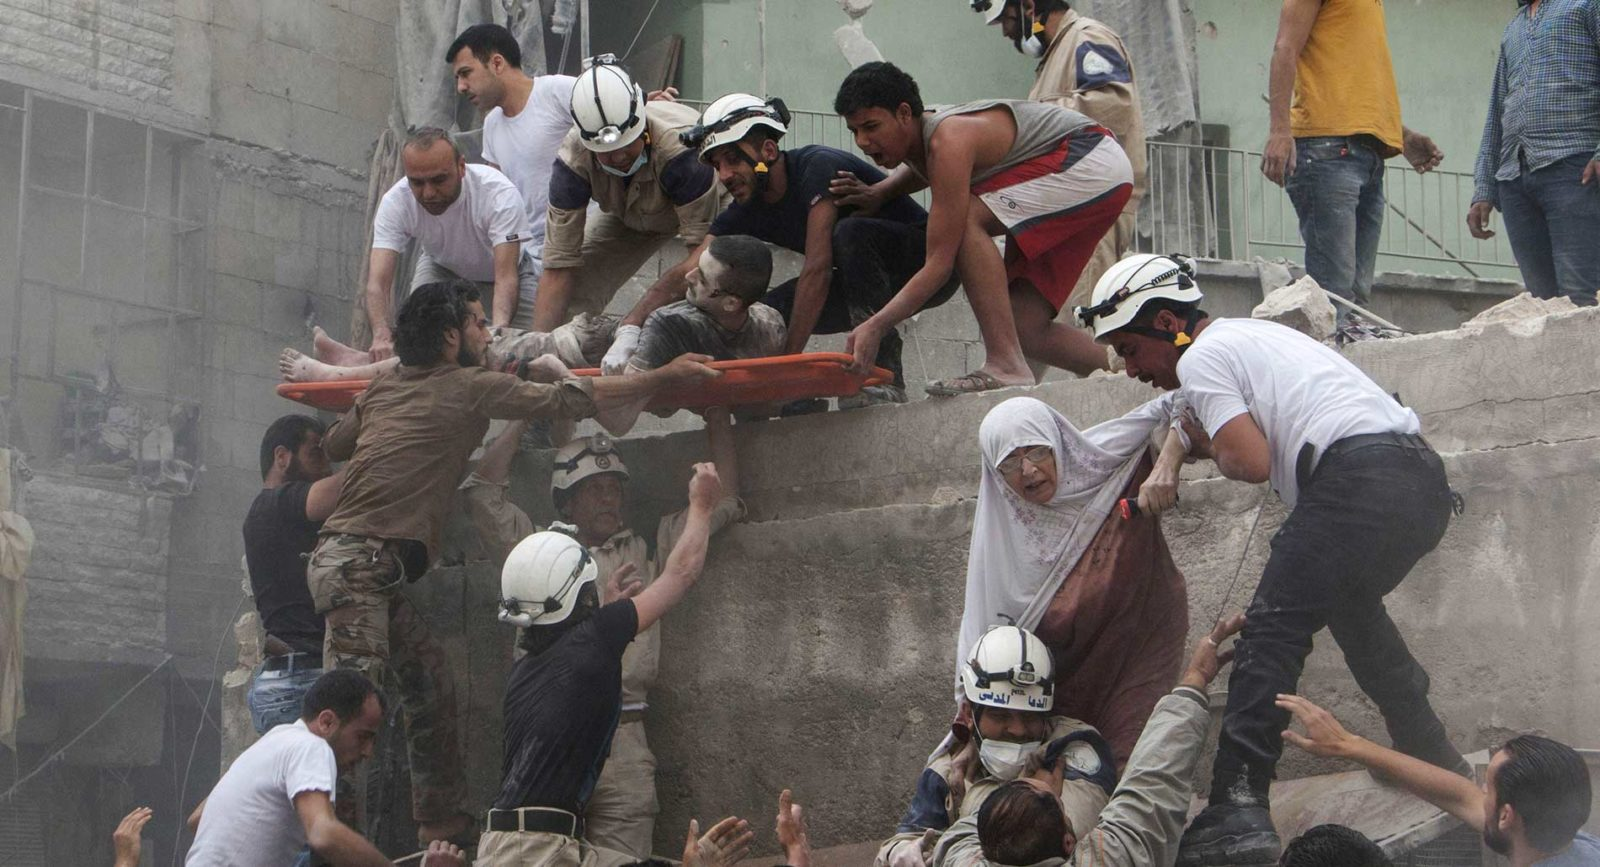 Syrian rescue workers and citizens evacuate people from a building following a reported barrel bomb attack by Syrian government forces.